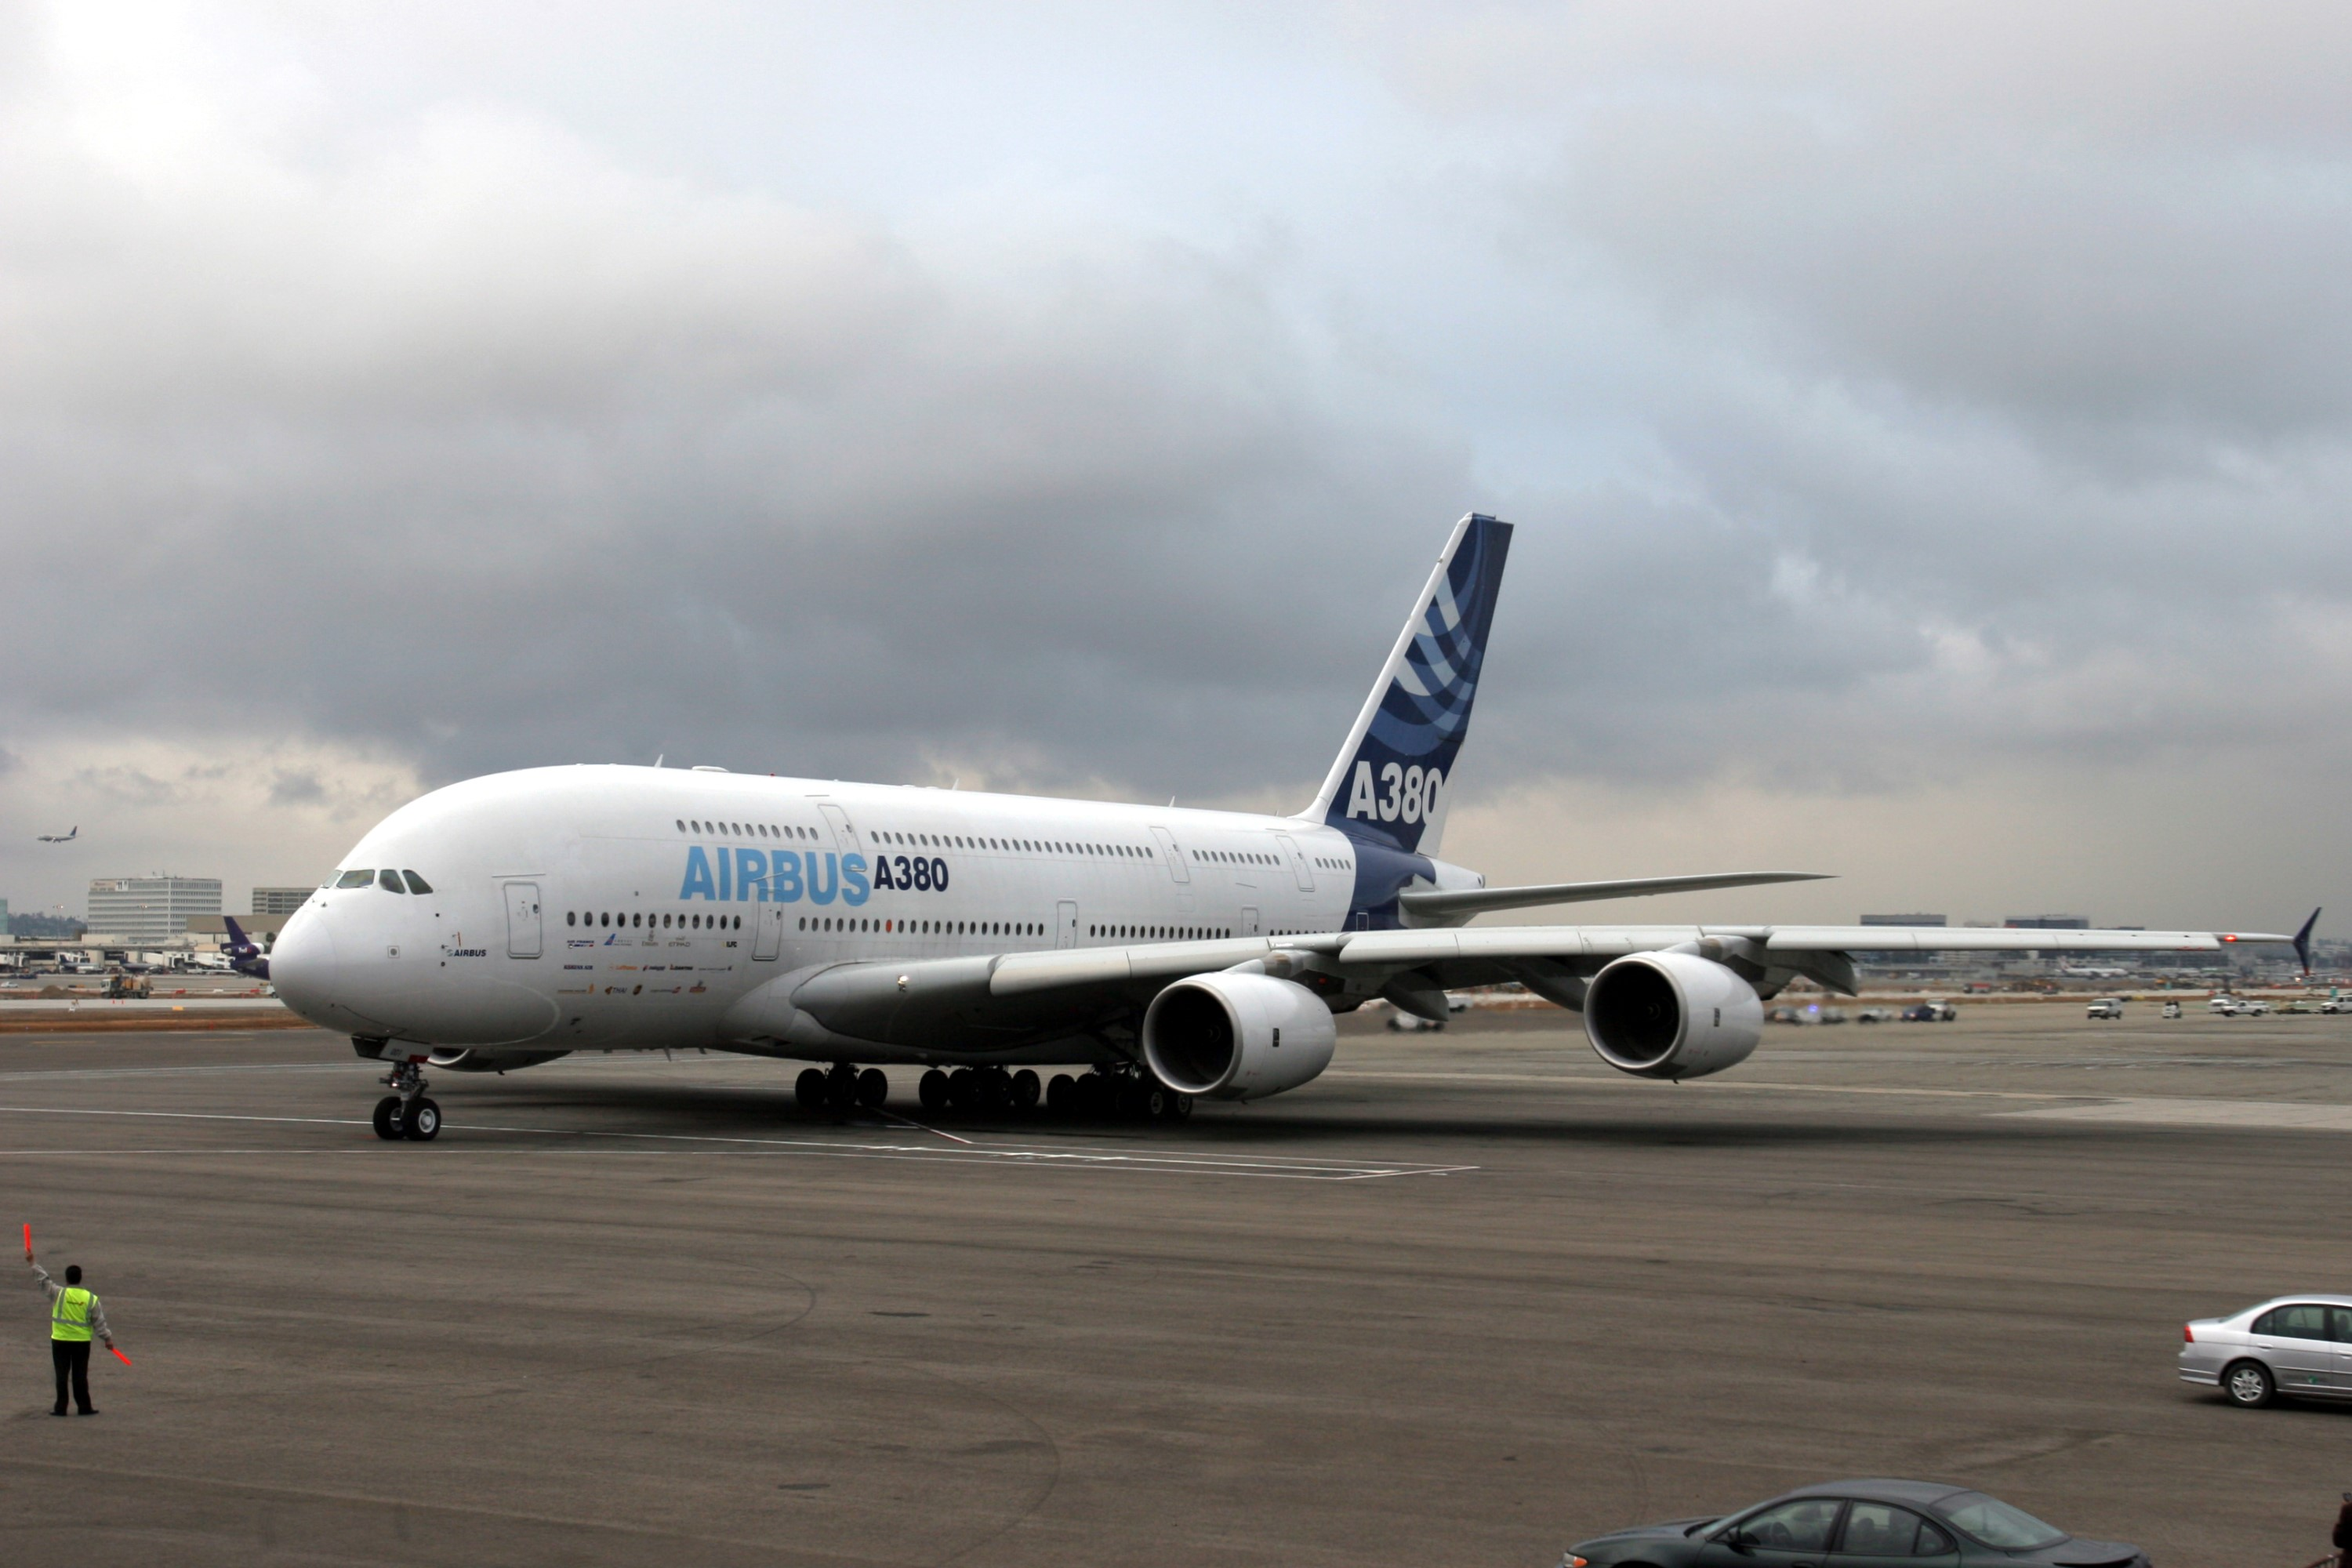 Airbus A380-800, high-capacity airliner on